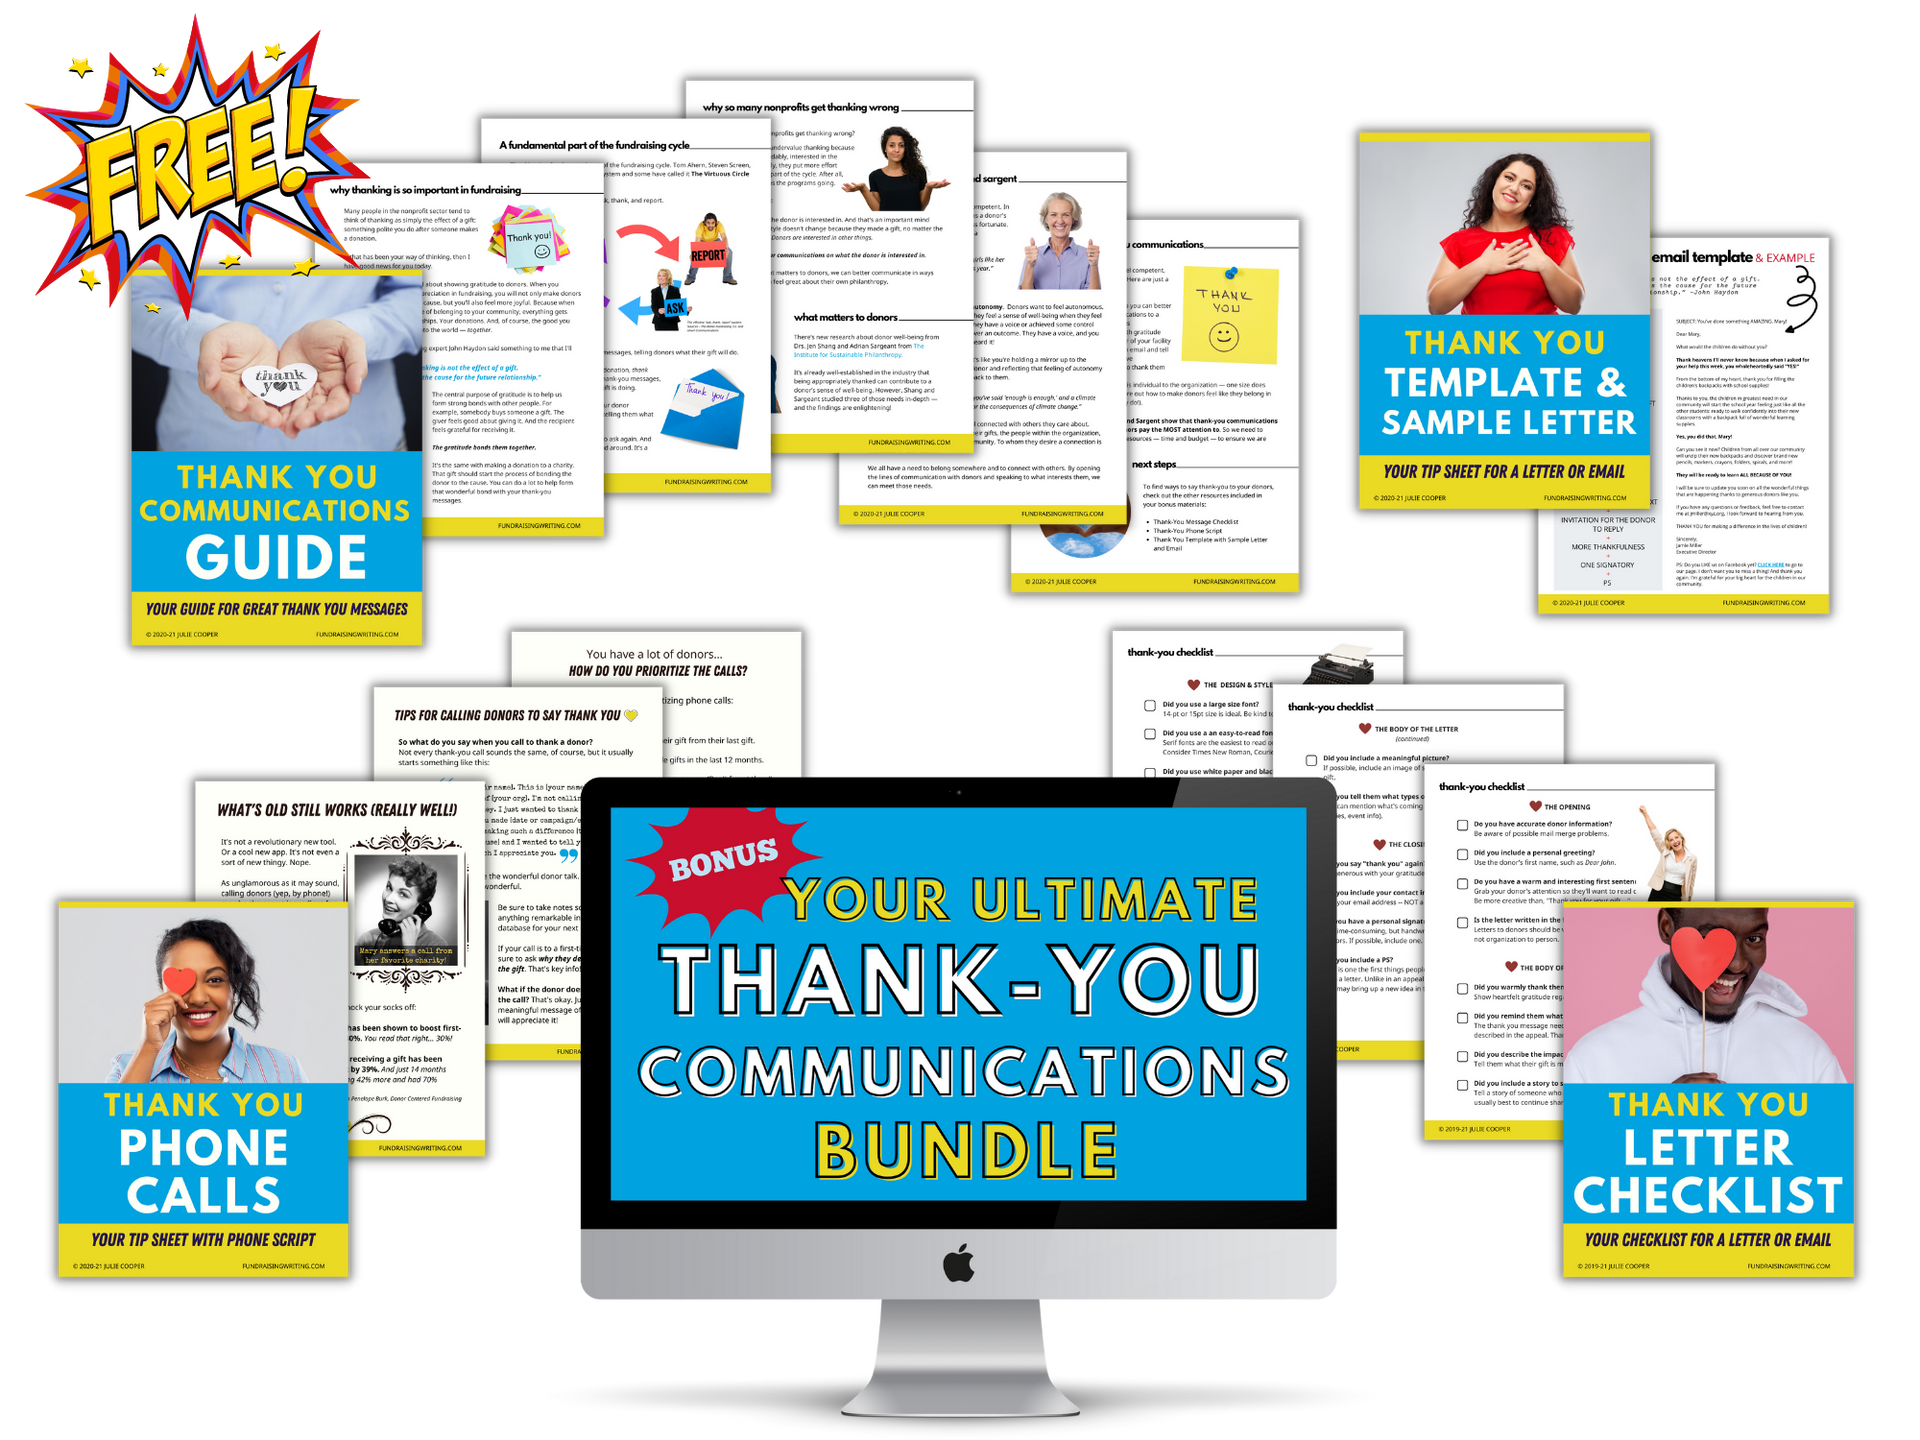 Thank you bundle is made up of 4 guides, checklists, template, and sample.